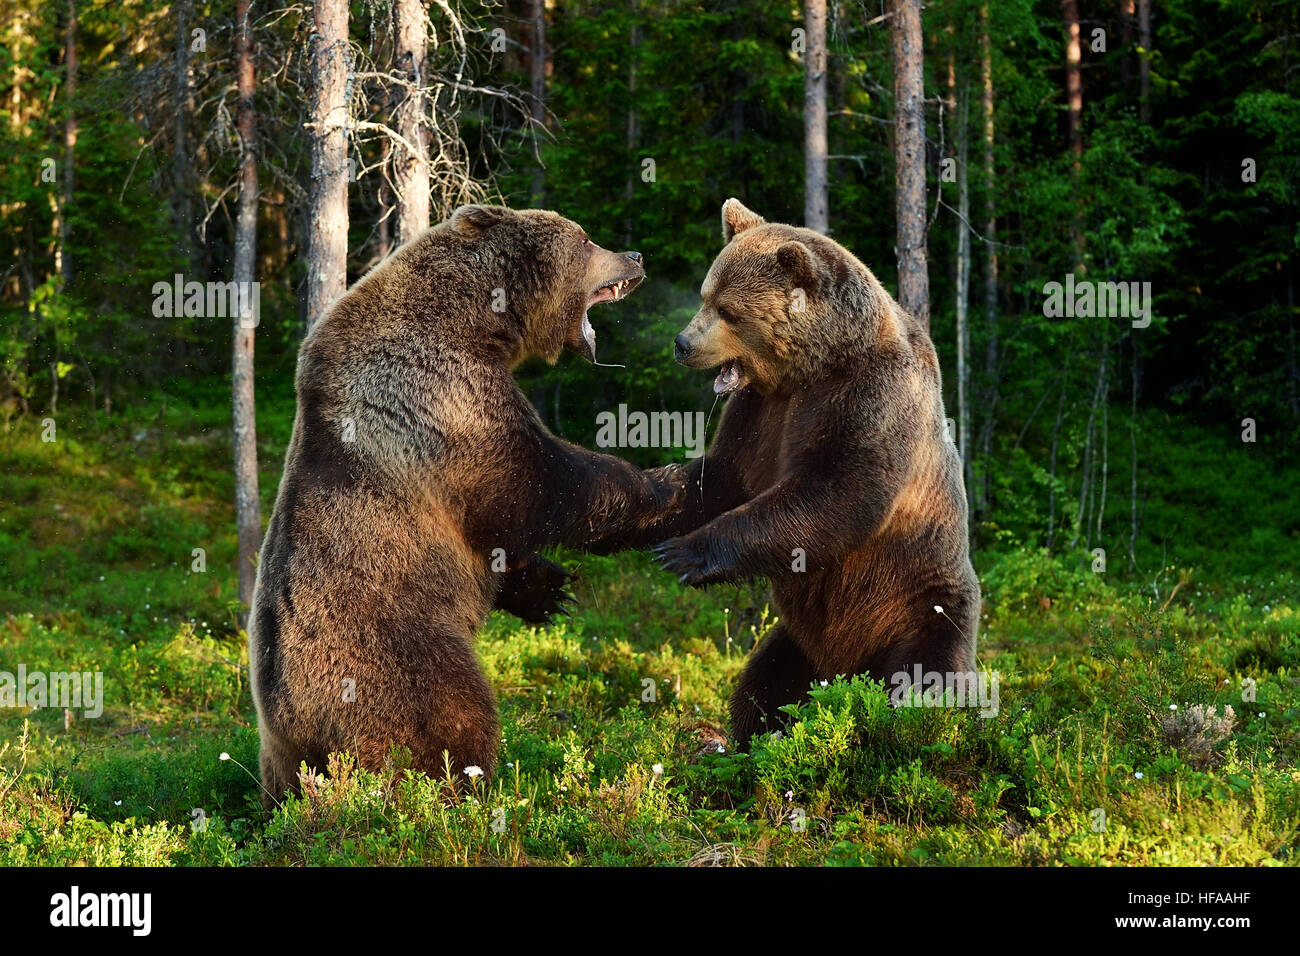 bear fight. bears fighting. animal fight. - Stock Image